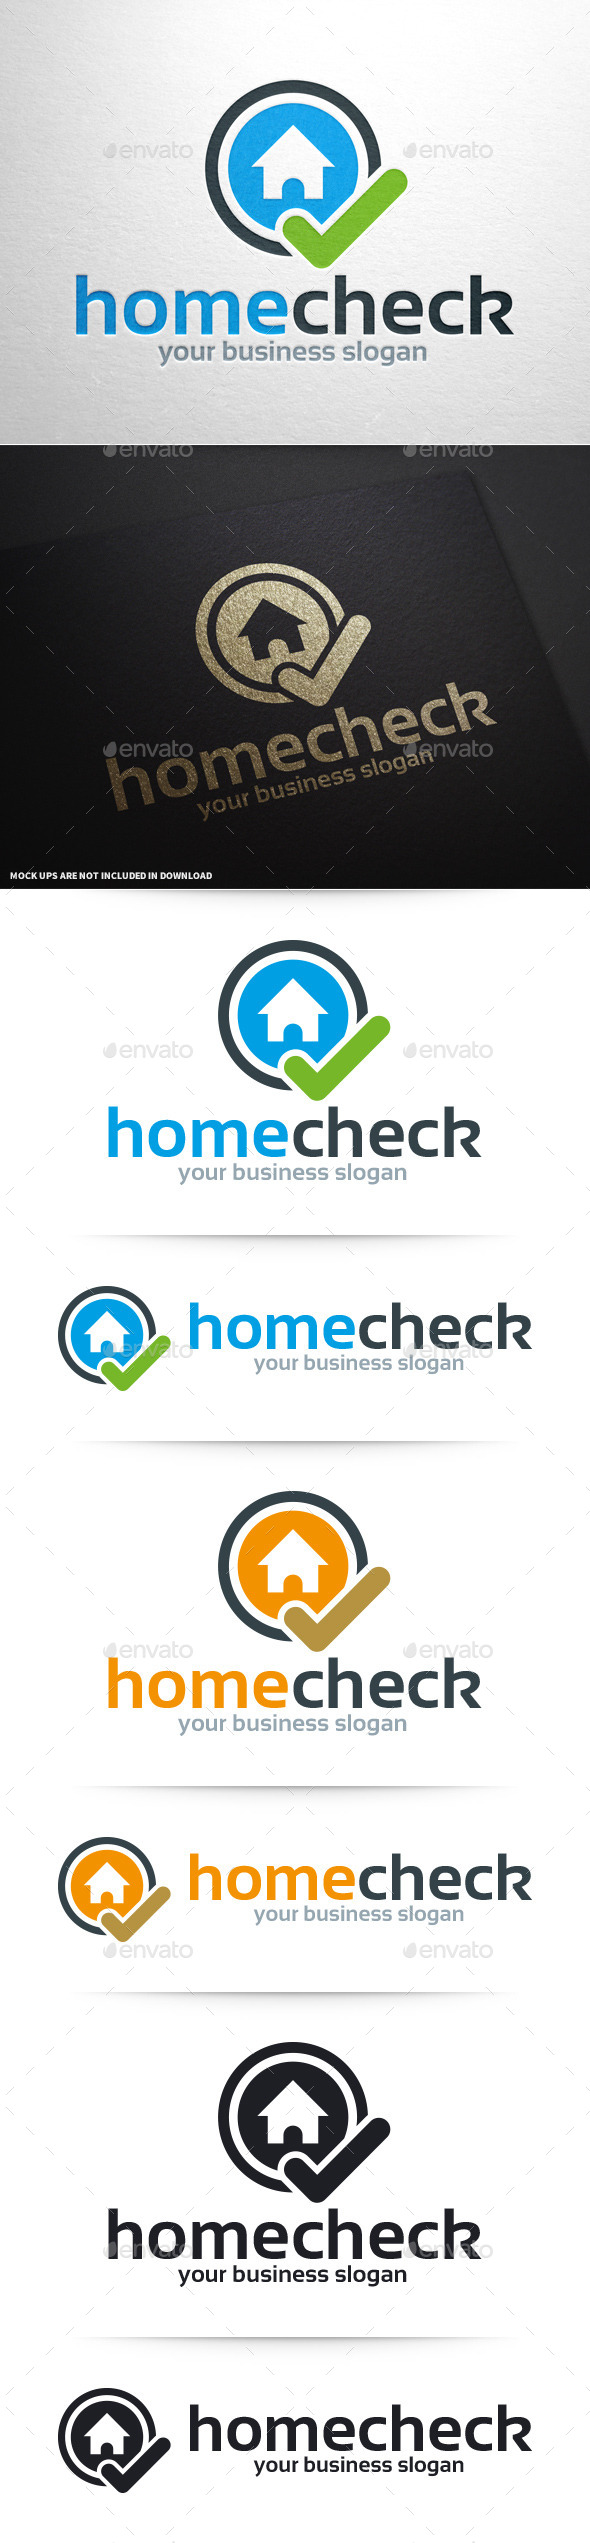 Home Check Logo Template - Symbols Logo Templates